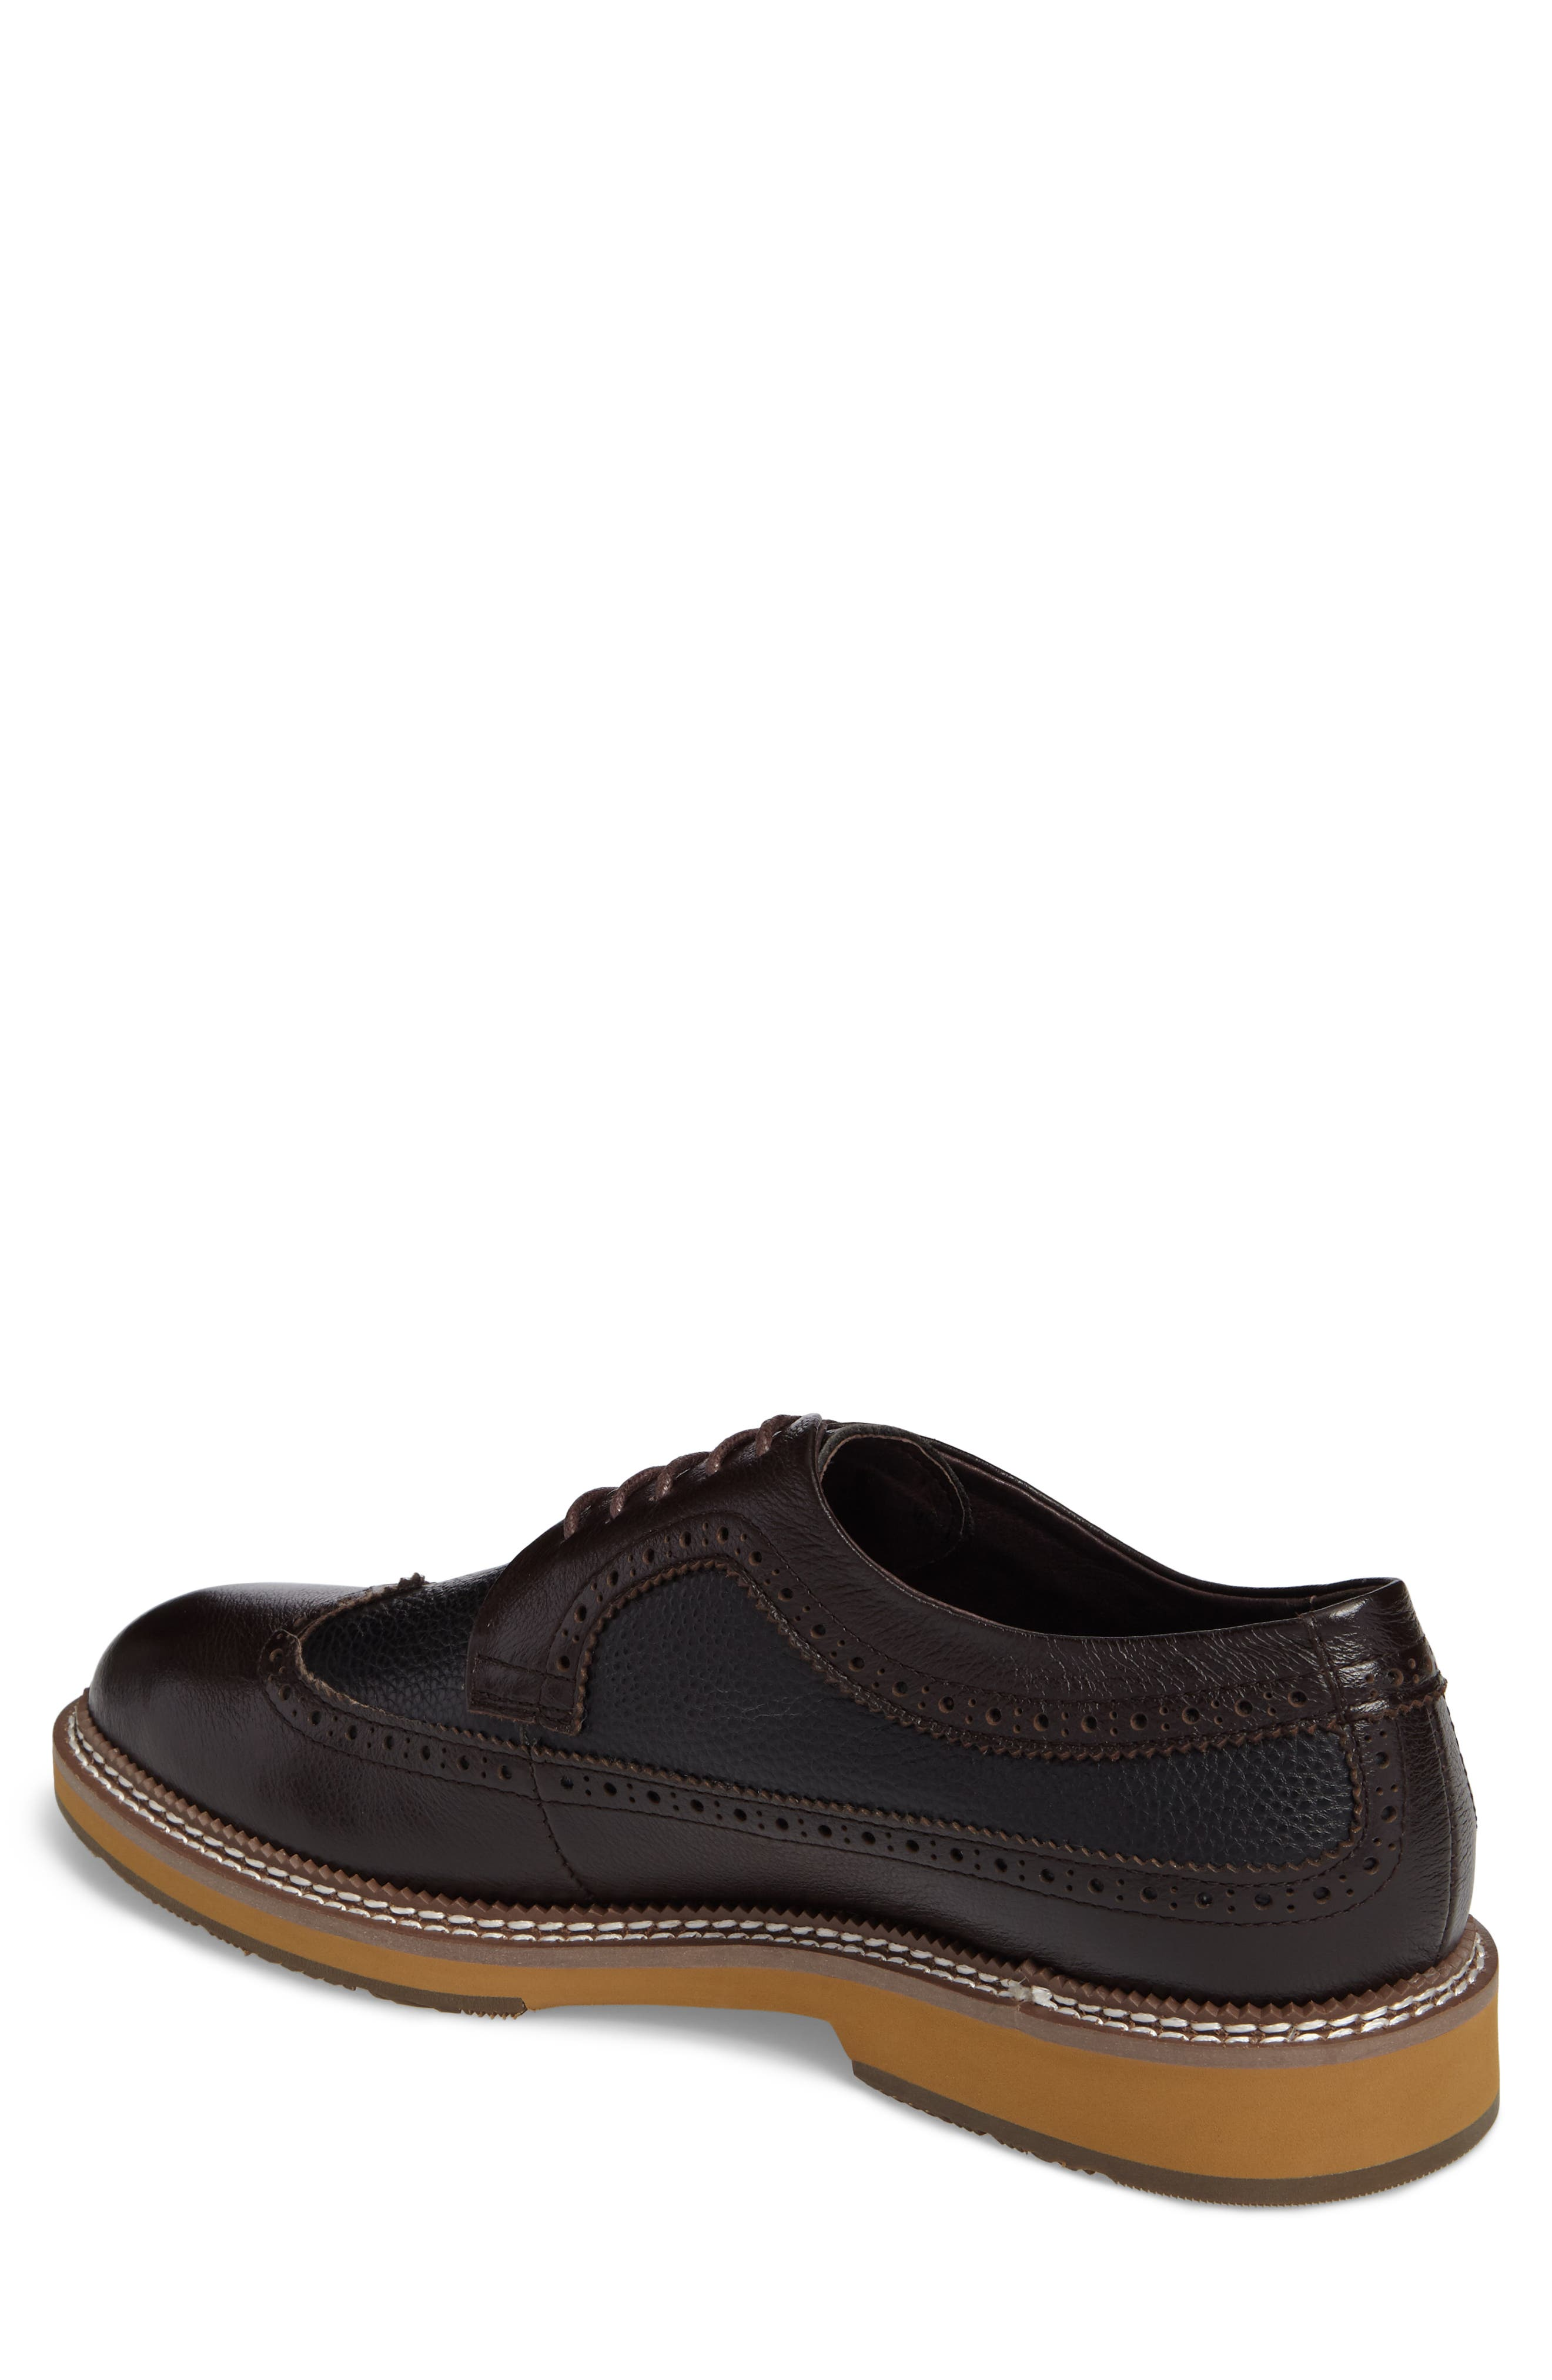 Fouquet Wingtip Derby,                             Alternate thumbnail 2, color,                             Brown Leather